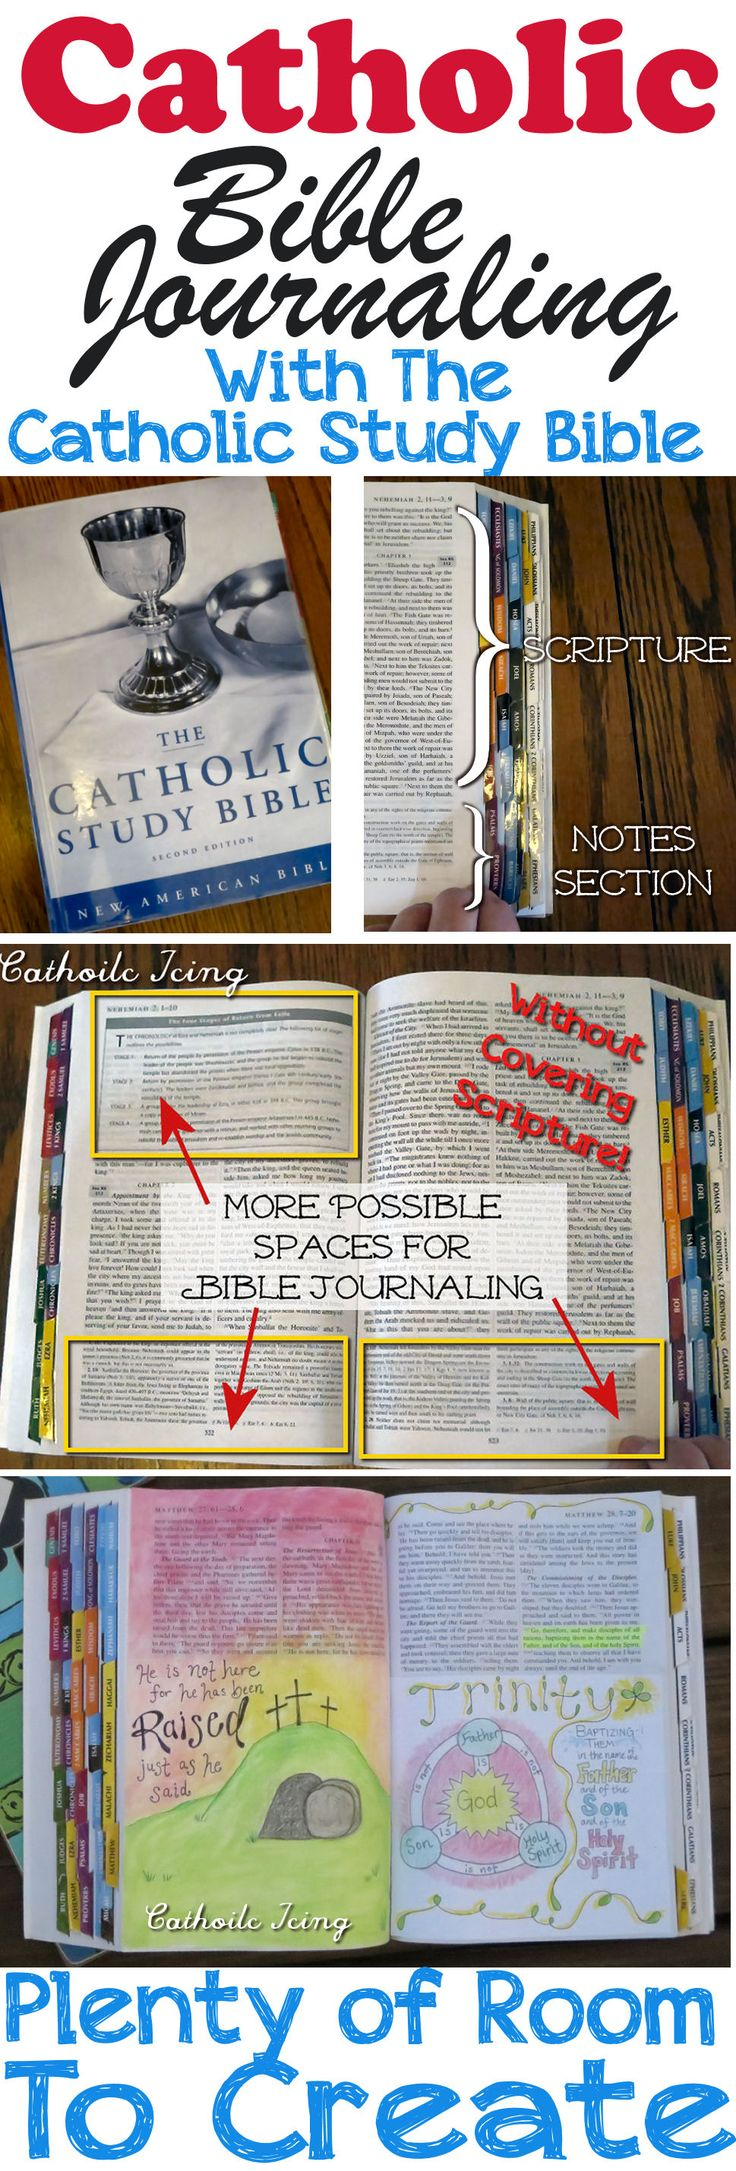 Bible Versions and Translations Online - Bible Study Tools